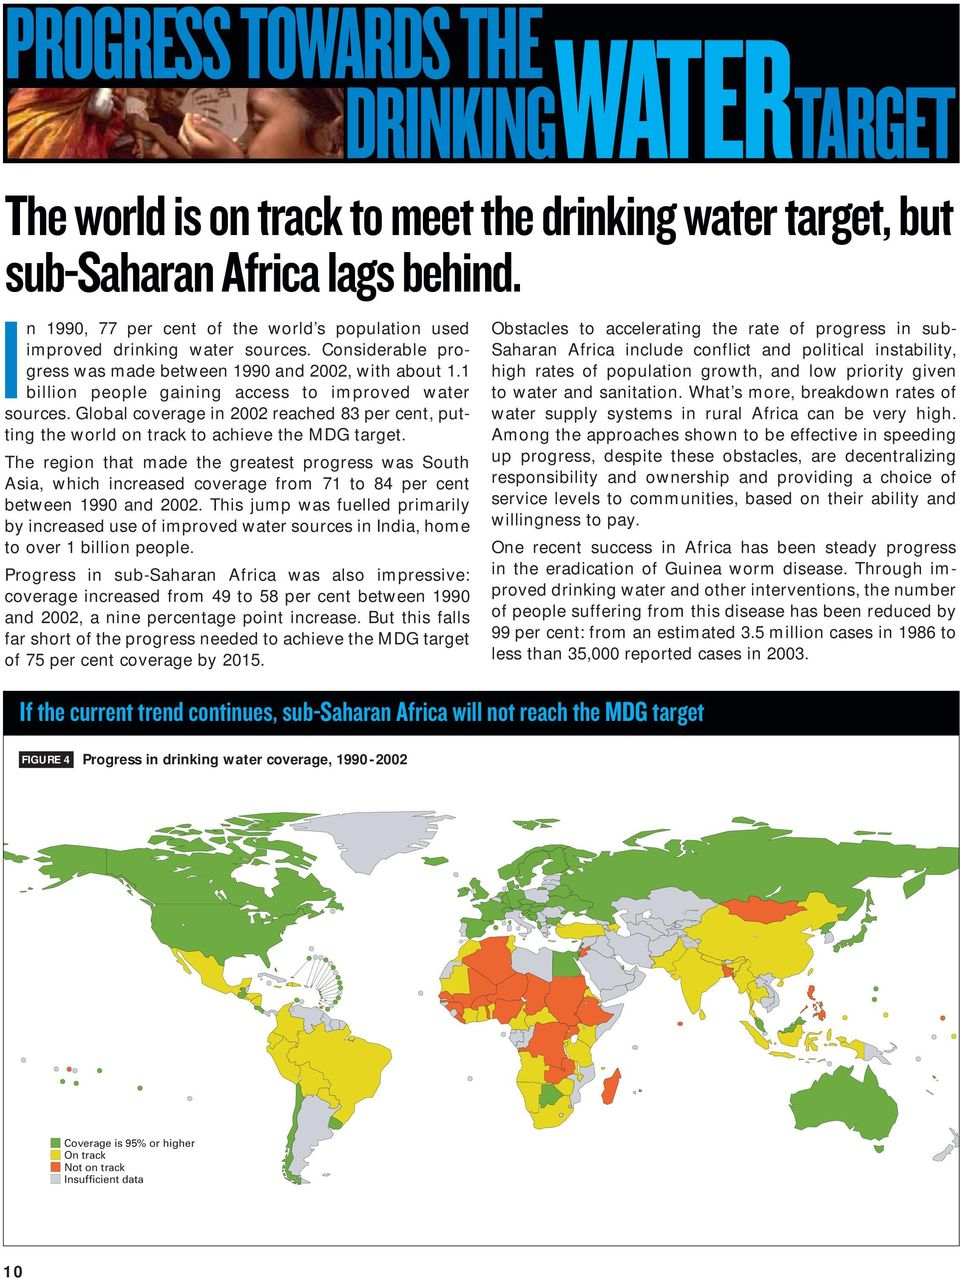 1 billion people gaining access to improved water sources. Global coverage in 2002 reached 83 per cent, putting the world on track to achieve the MDG target.